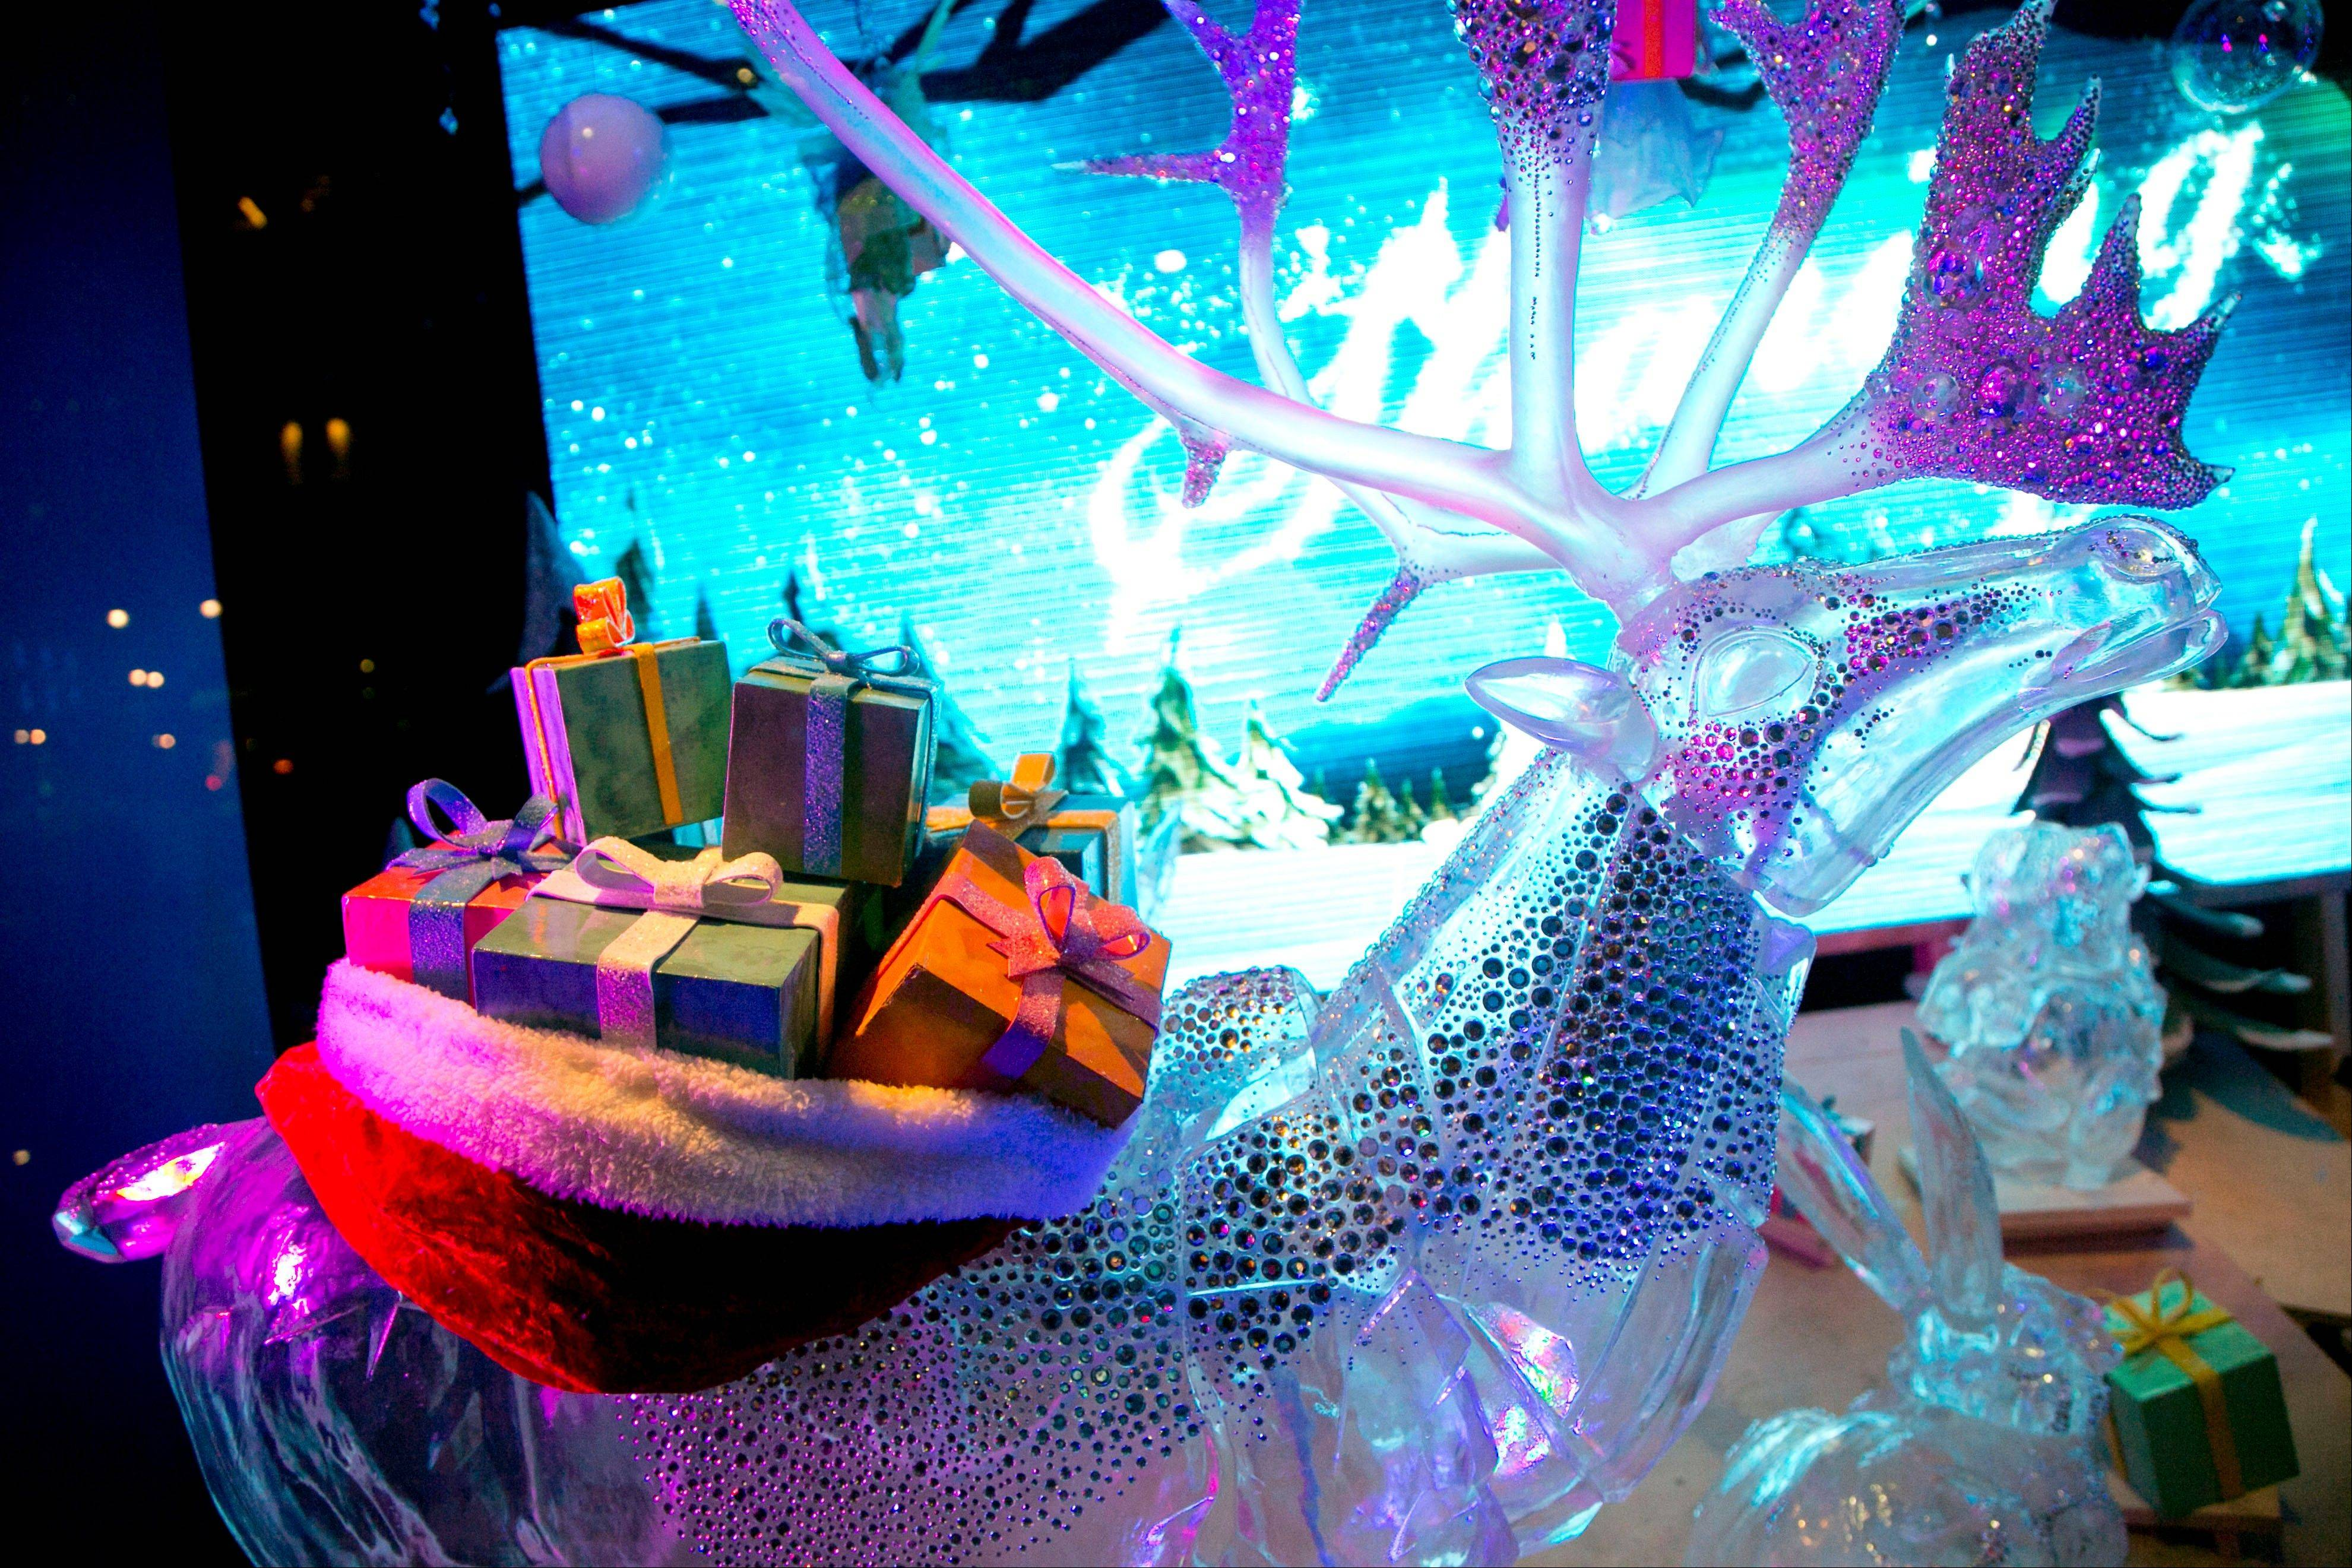 A reindeer sculpture carries a load of gift-wrapped presents in a holiday window display at Macy's in New York.